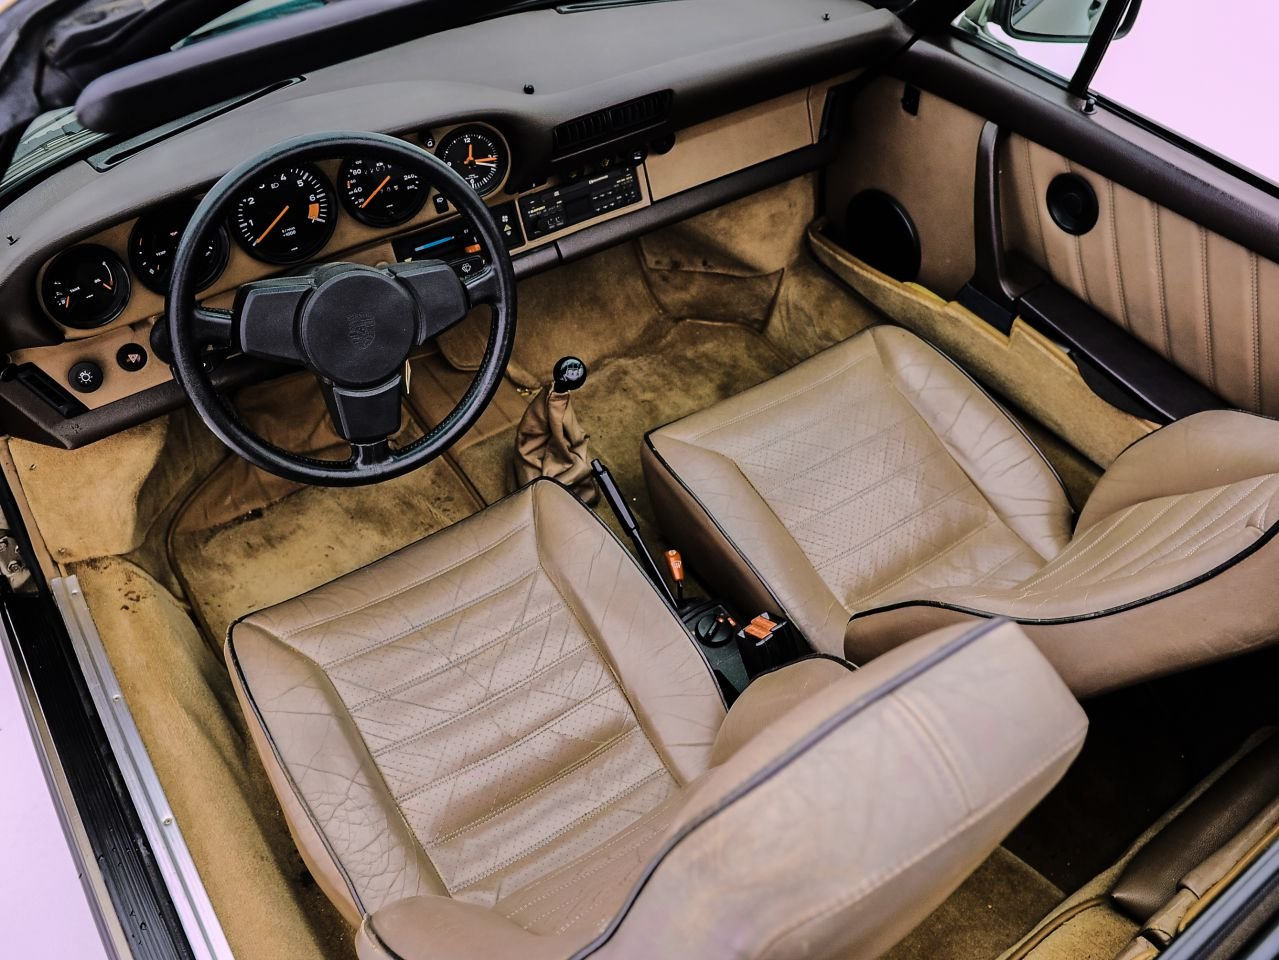 1984 PORSCHE 911 3.2 CARRERA CABRIOLET For Sale by Auction (picture 5 of 6)